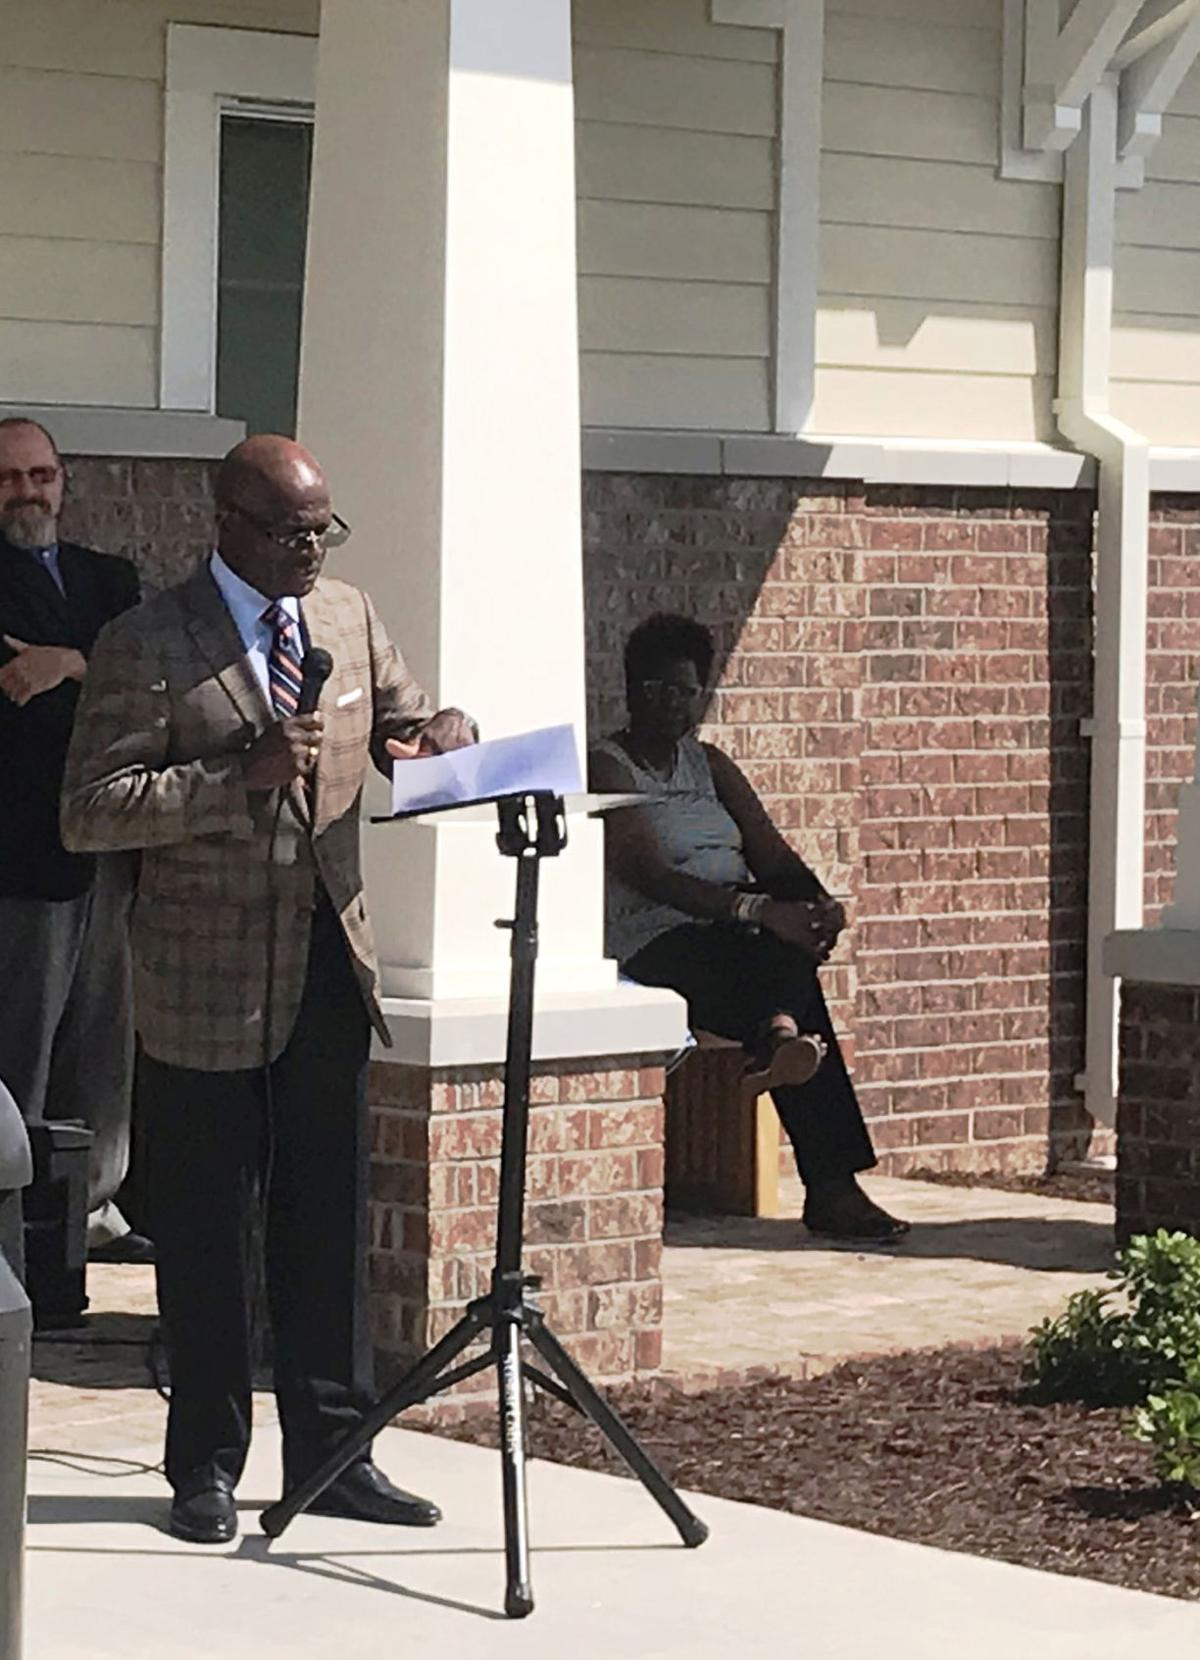 Trinity Behavioral Care opens new facility in honor of Sen. Williams